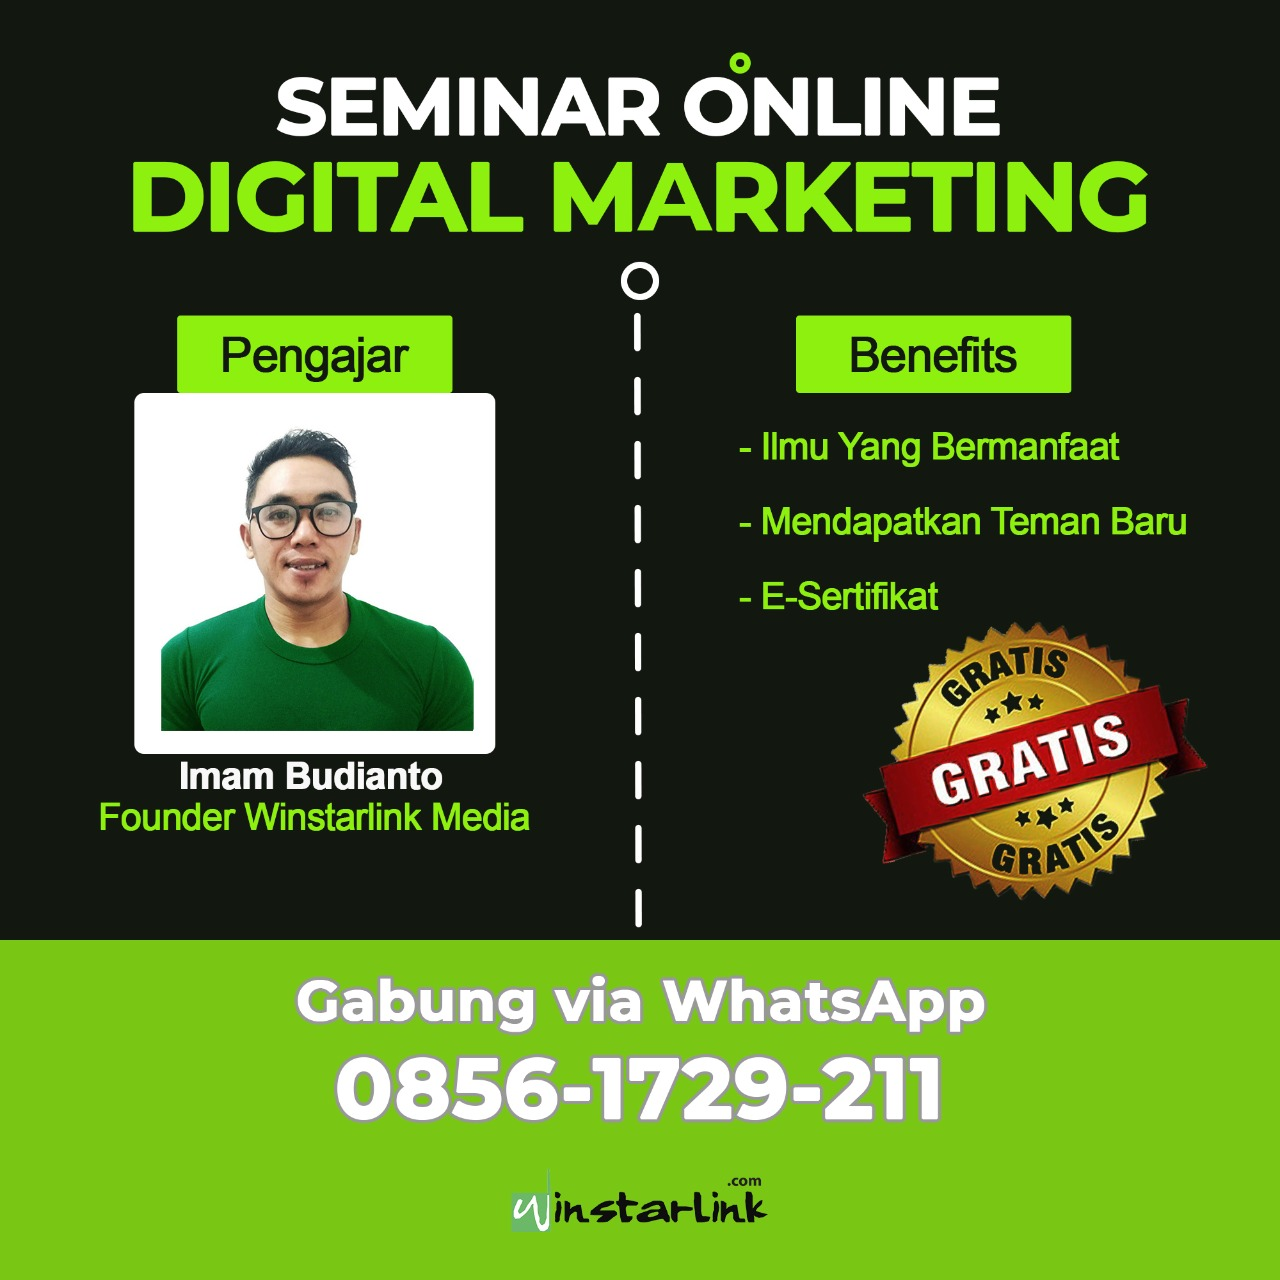 seminar-online-digital-marketing